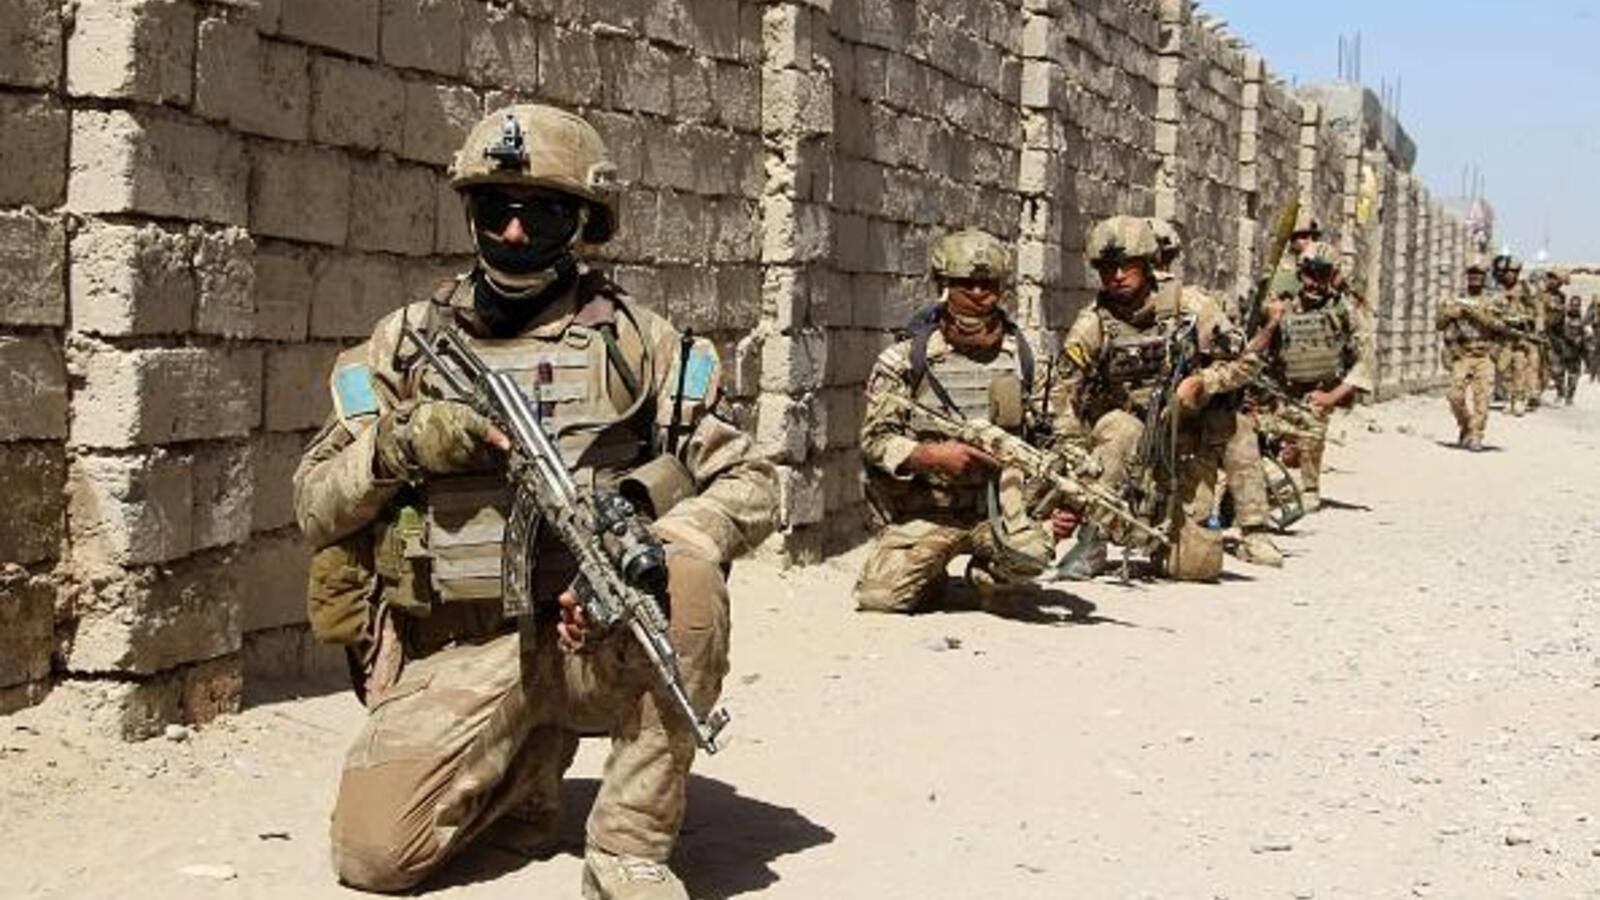 Pro-government forces kill more Afghans than insurgents